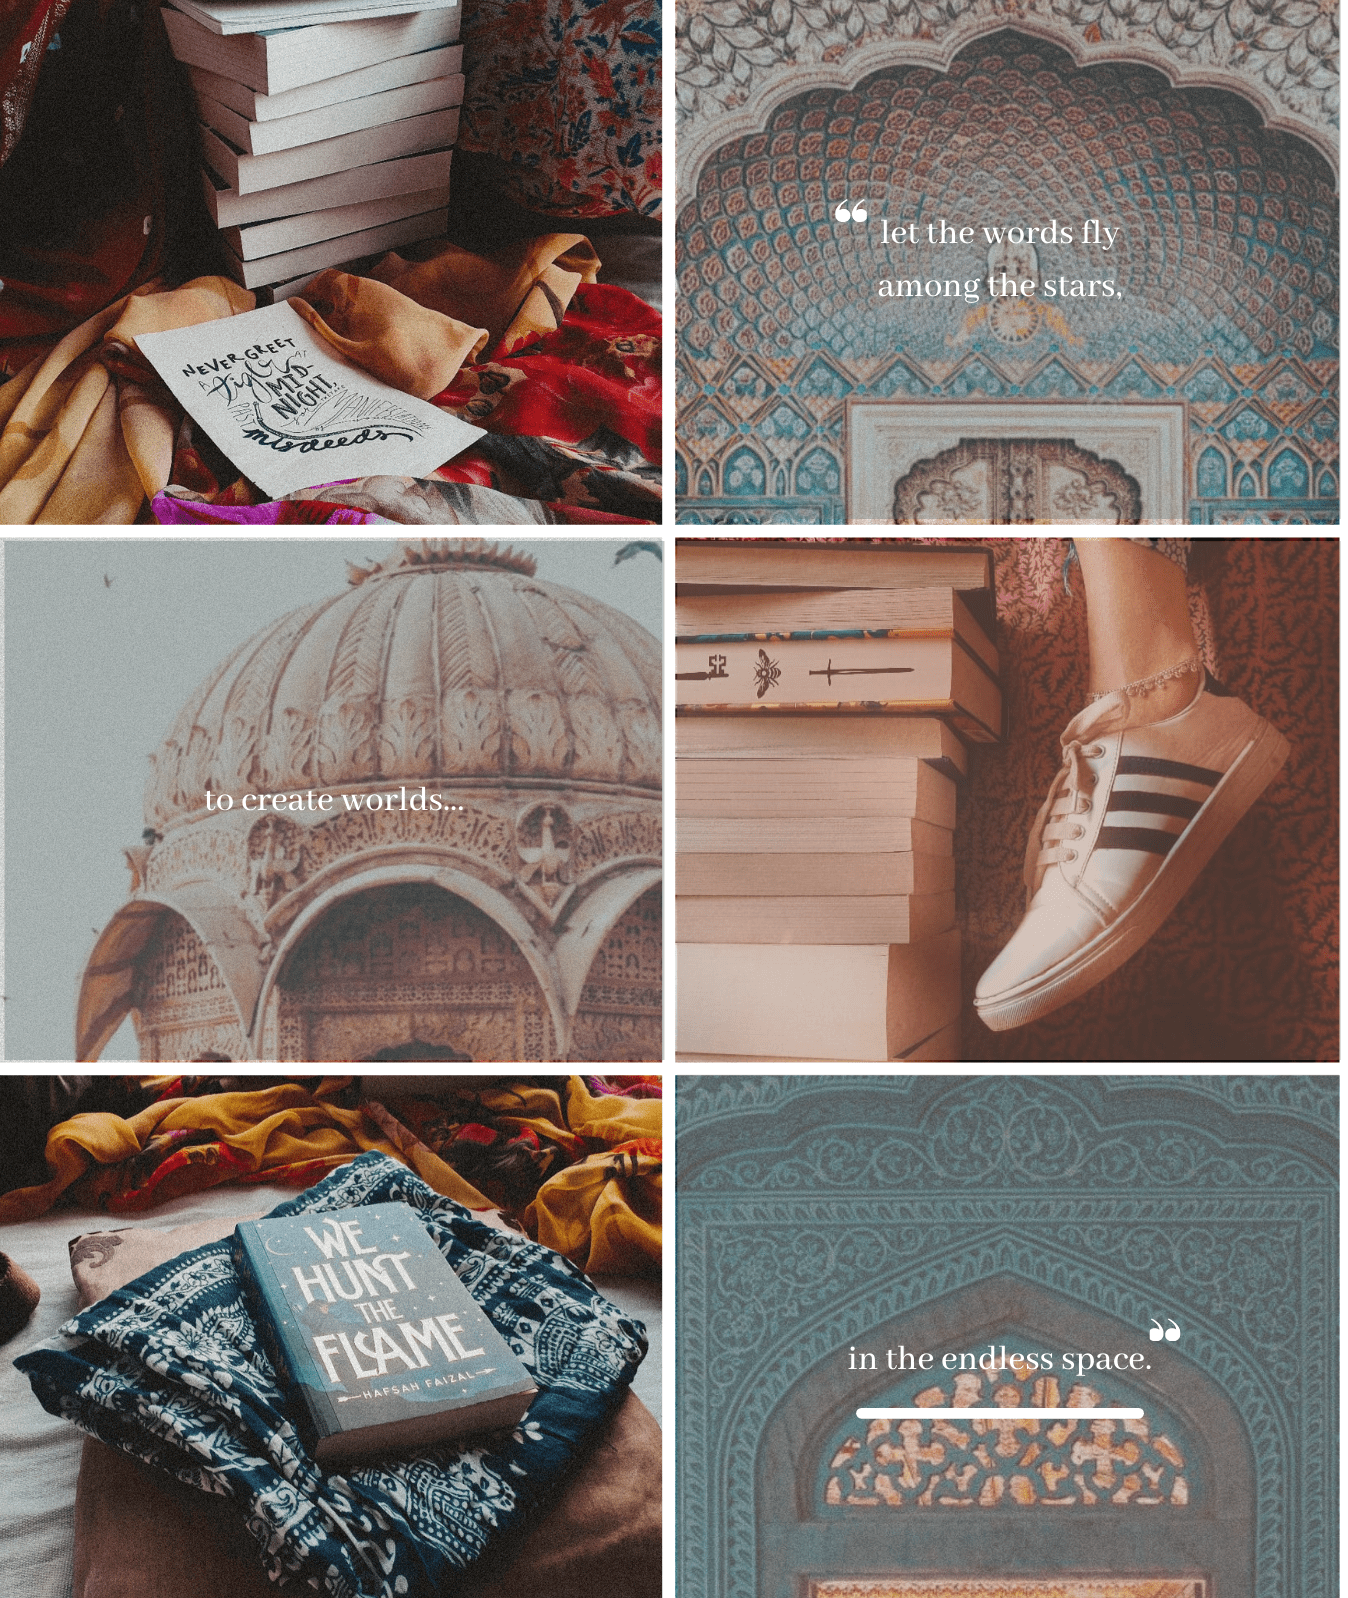 fanna for books collage sidebar